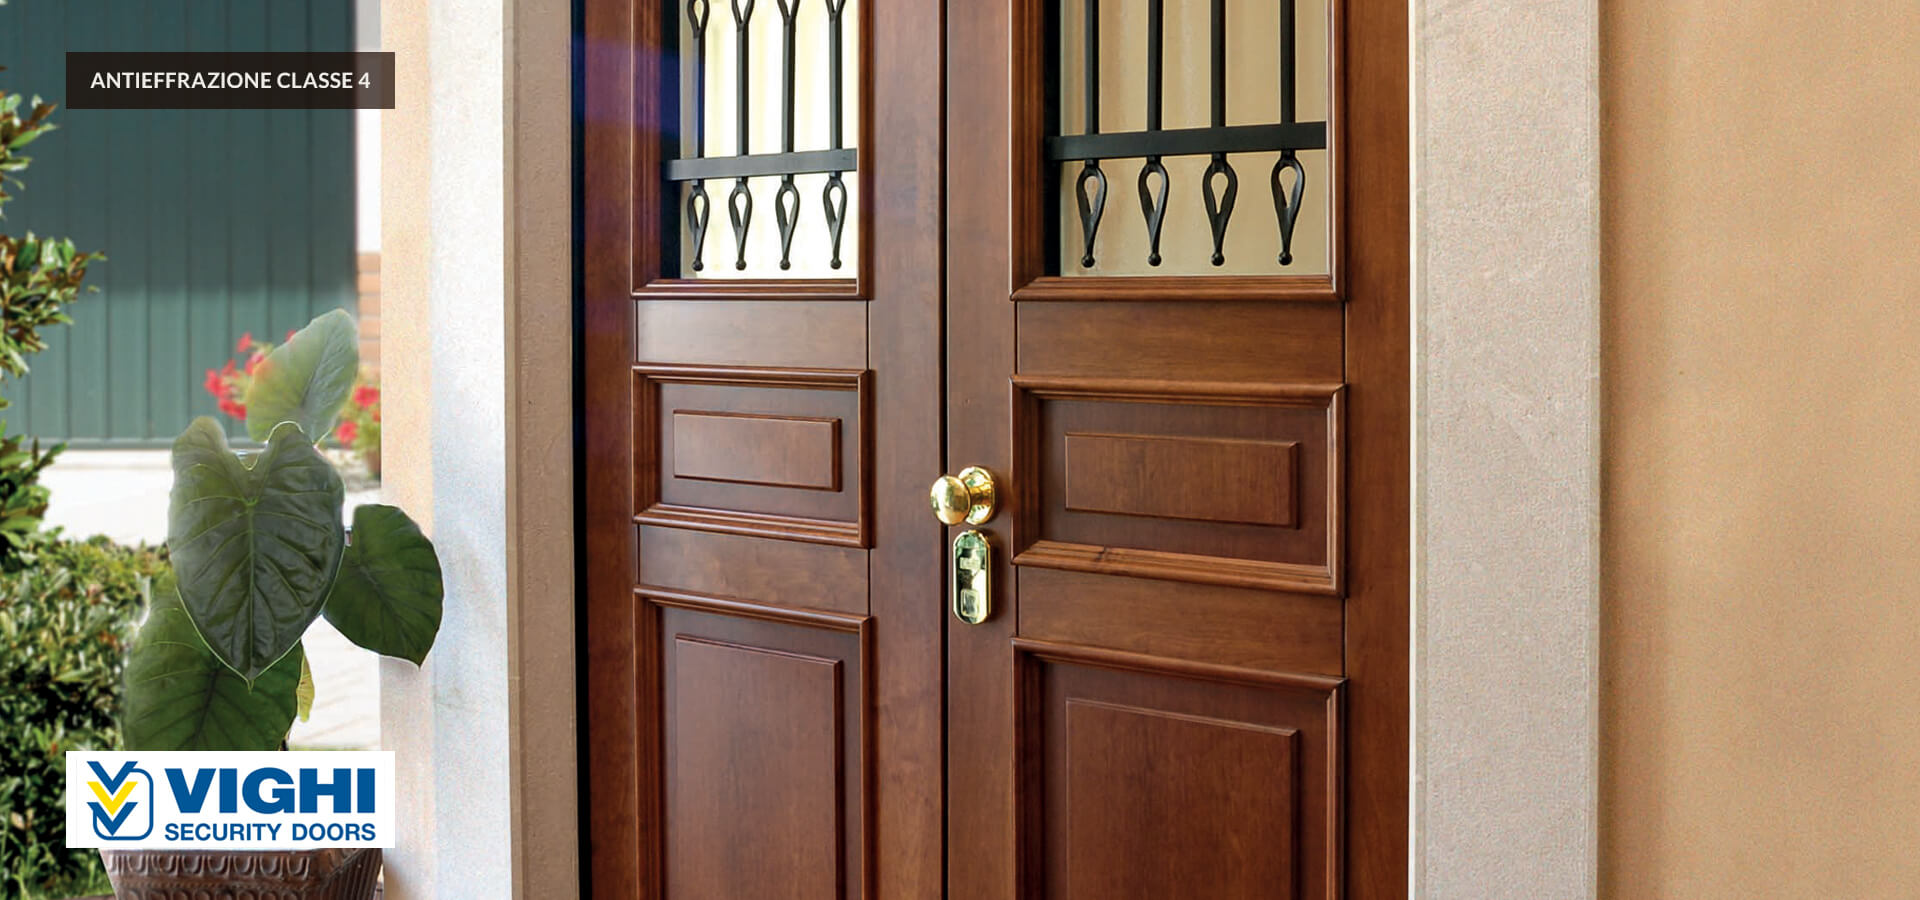 Vghi armored door with crescent-shape glass